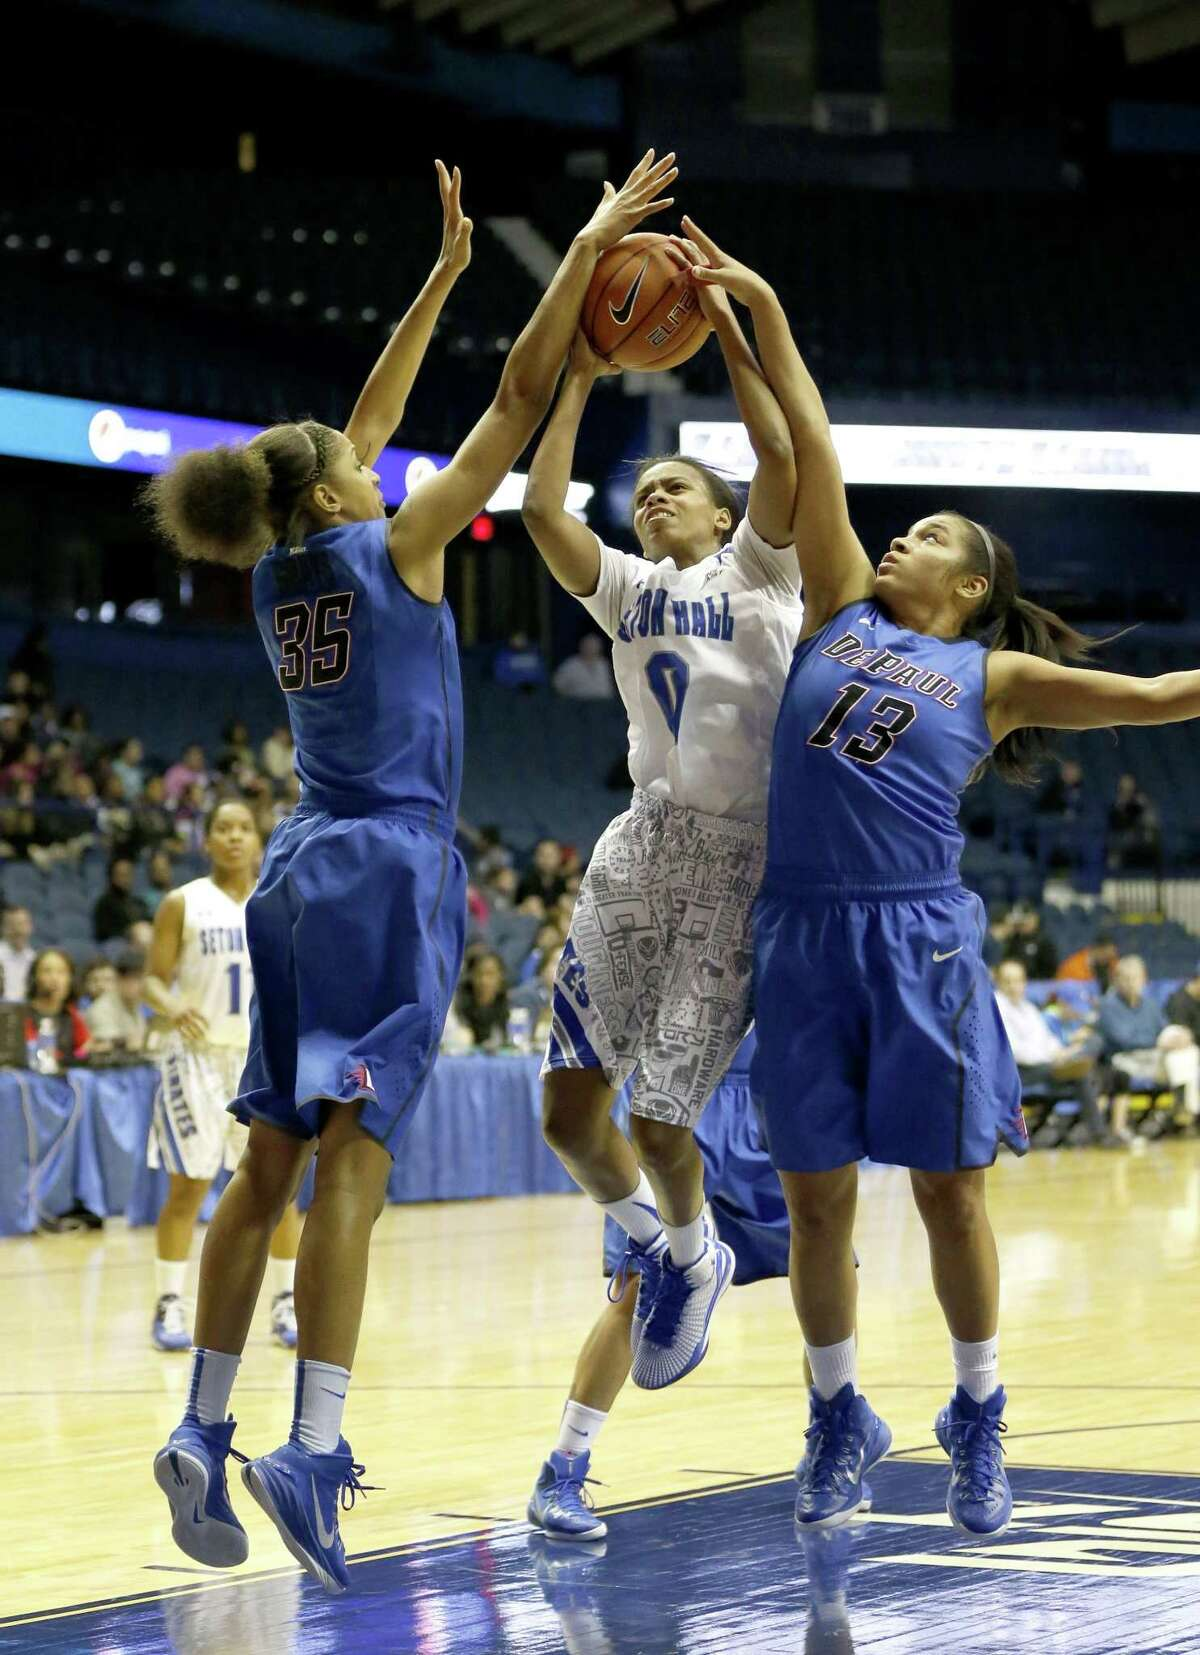 Seton Hall guard Daisha Simmons drives between DePaul's Mart'e Grays (35) and Chanise Jenkins during the Big East tournament title game on March 10 in Rosemont, Ill.